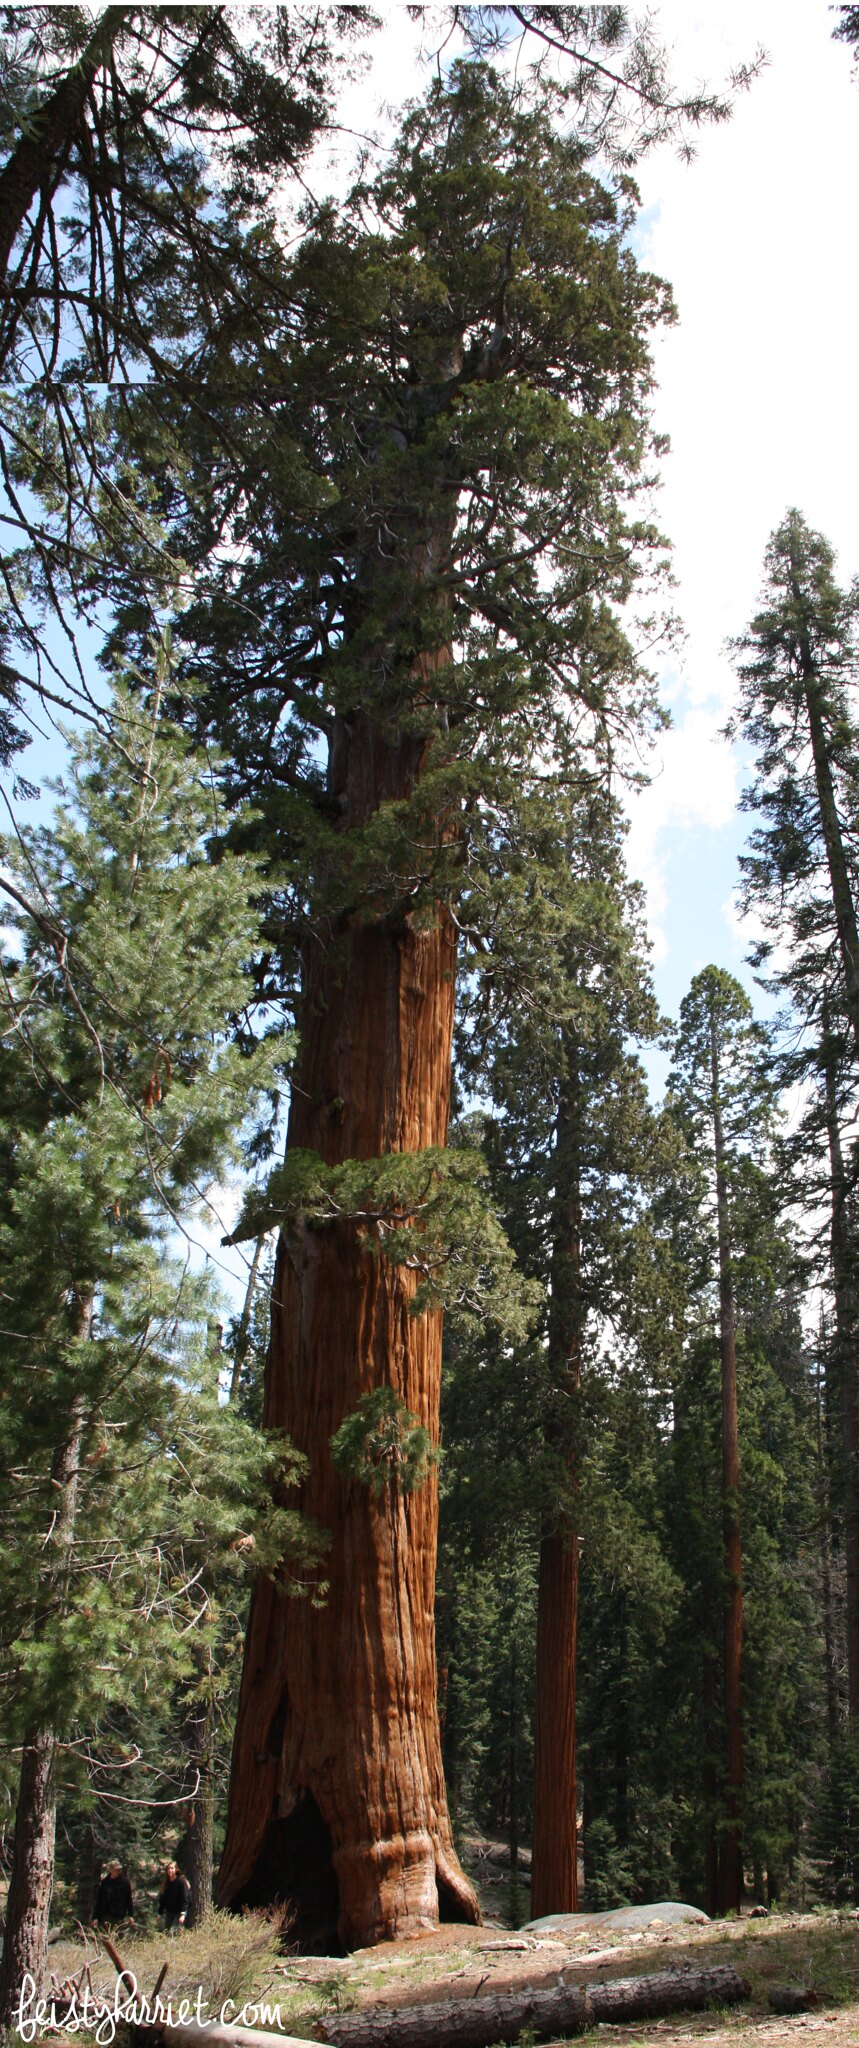 Sequoia National Park_feistyharriet_May 2016 (1)